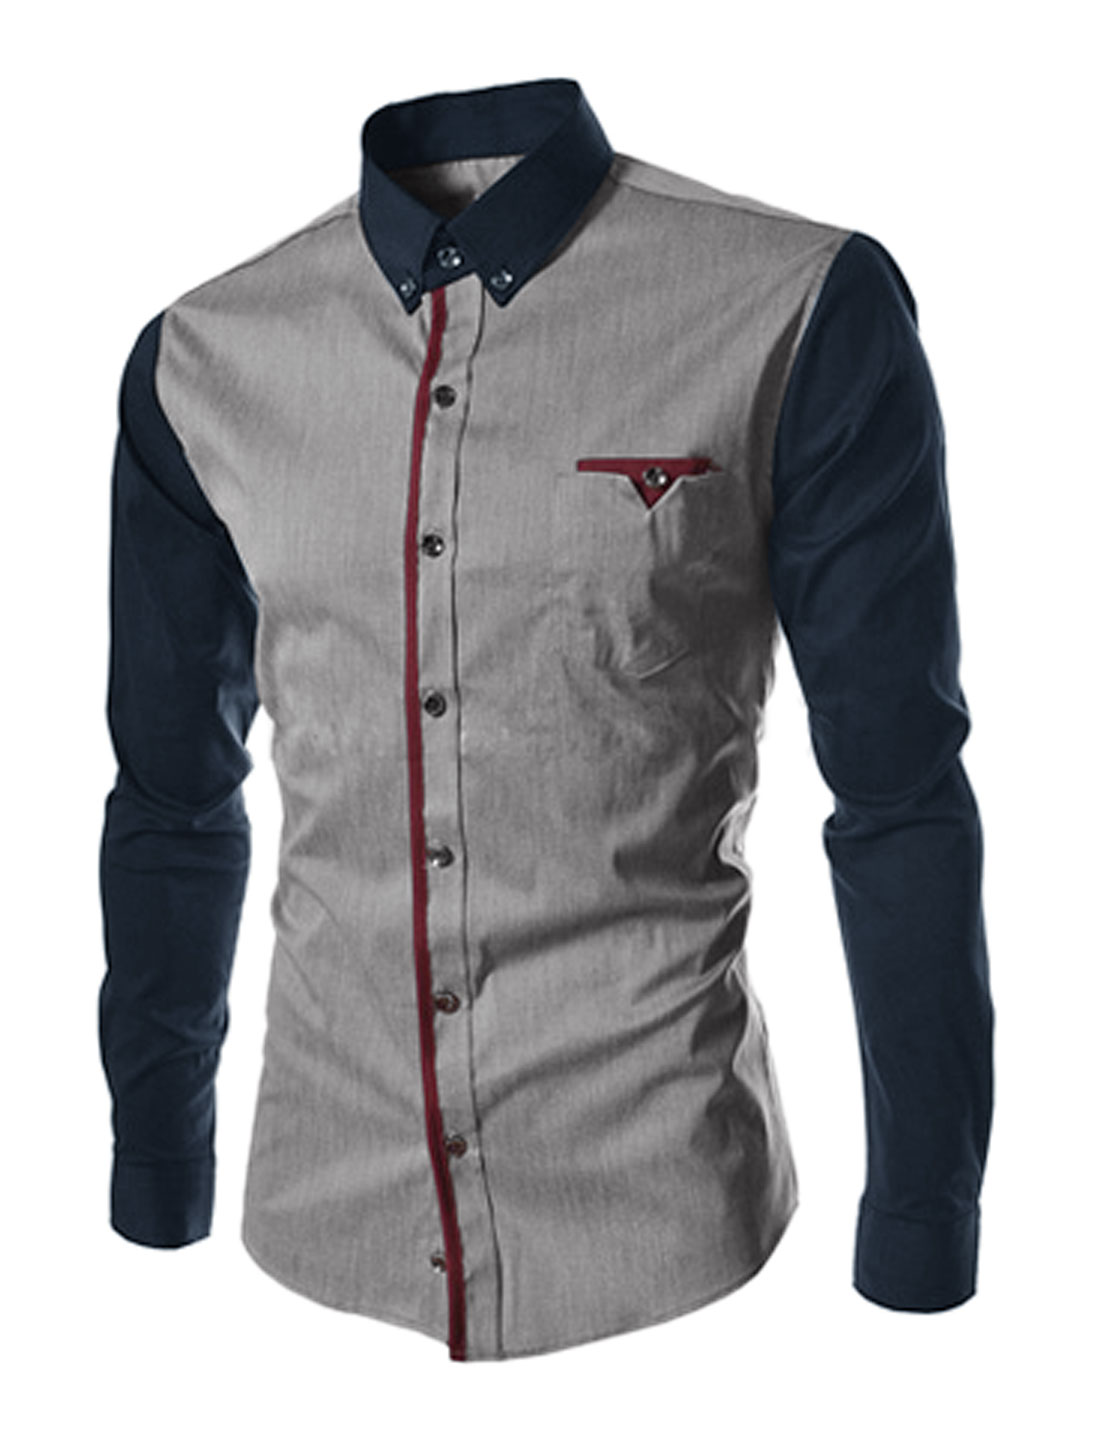 Men Contrast Color Long Sleeves Slim Fit Button Down Shirt Gray M